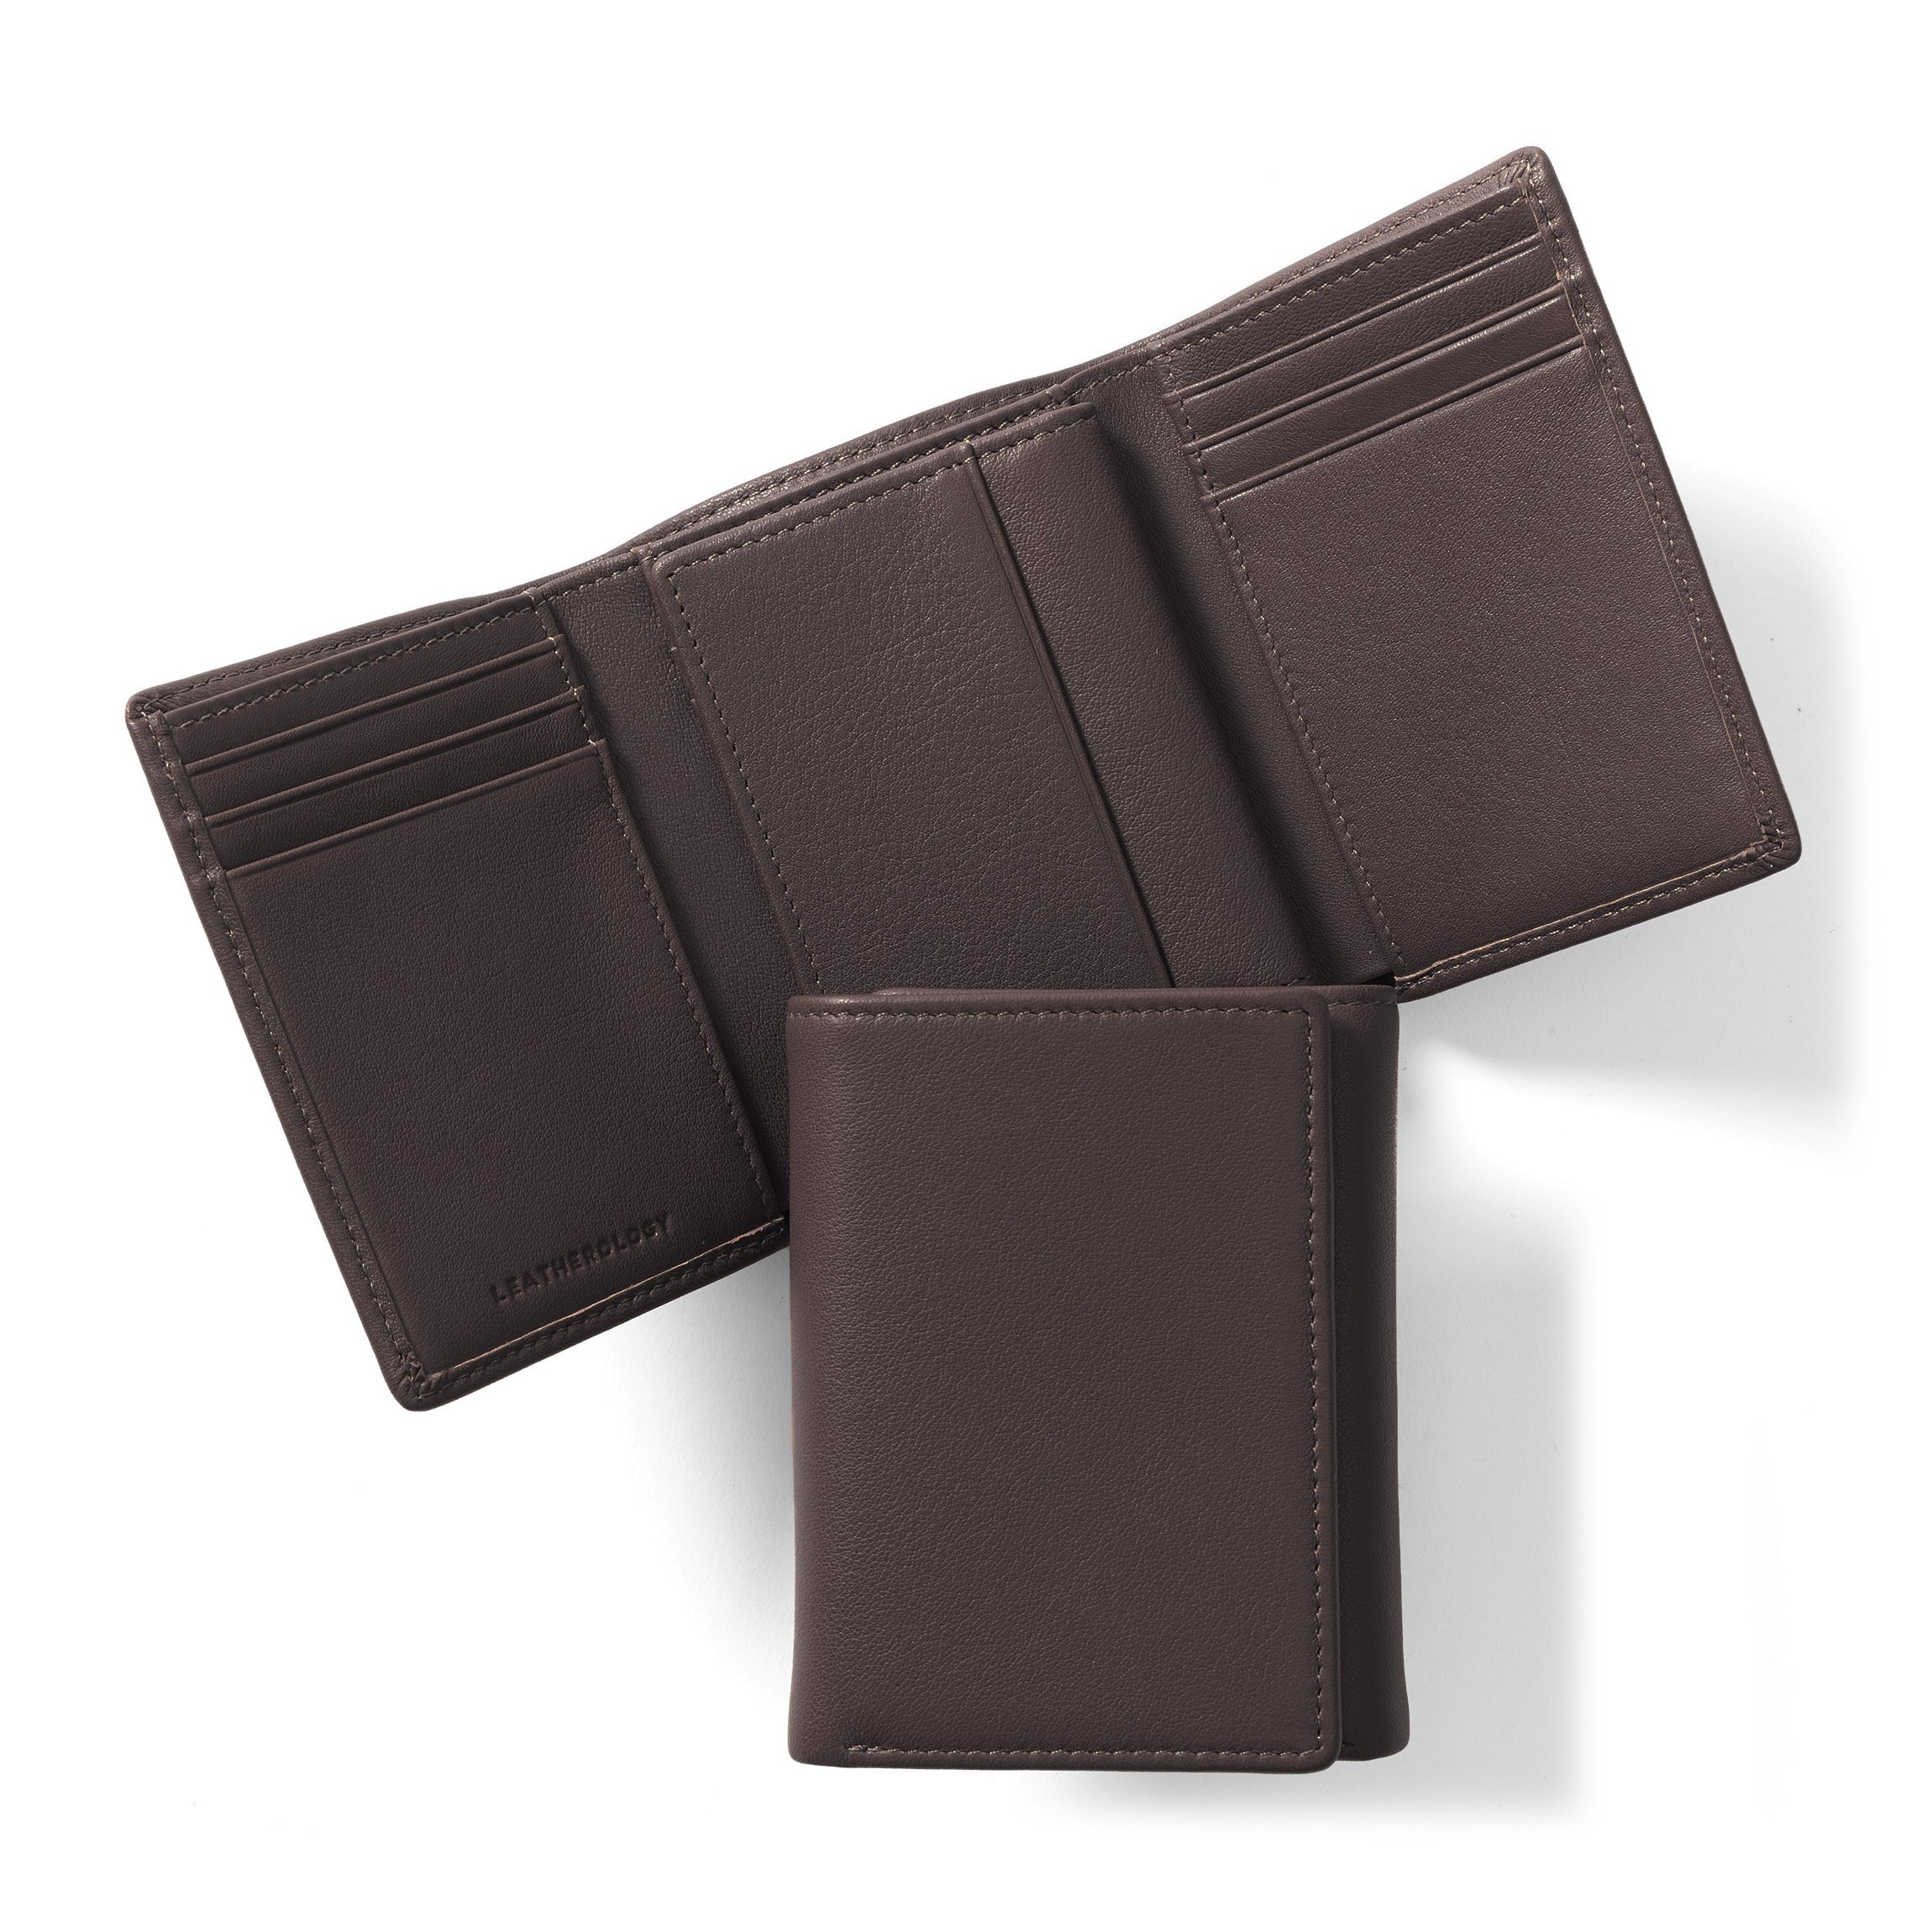 Trifold with Card Wallet - Full Grain Leather Leather - Chocolate Brown (brown)